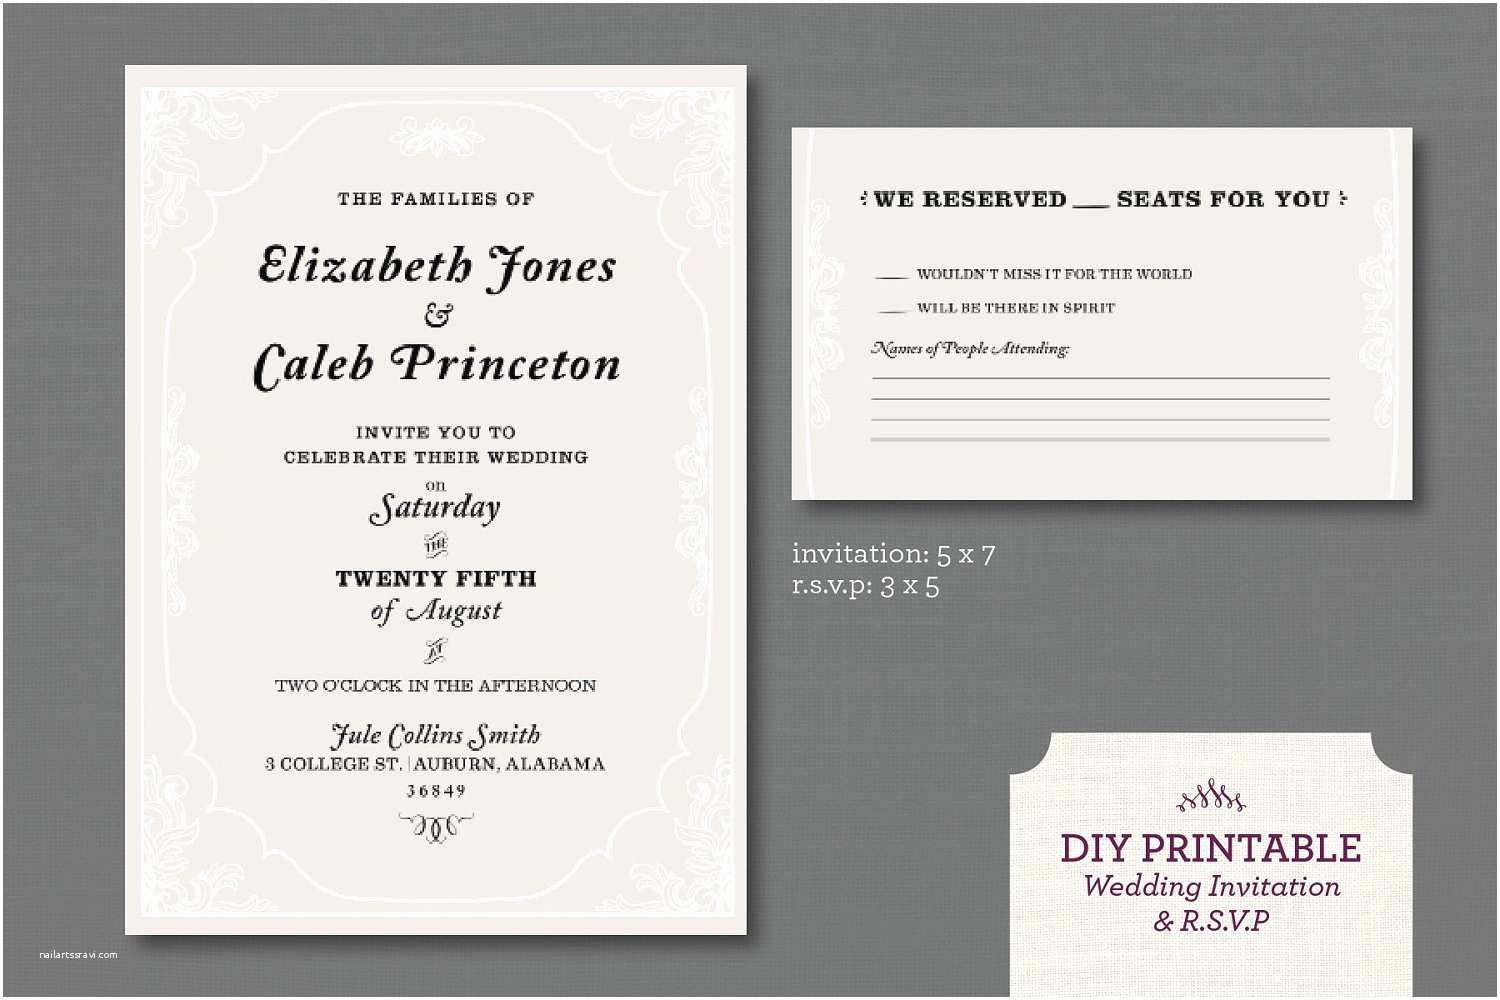 How to Rsvp for Wedding Invitation Wedding Invitations Rsvp Line Printable Wedding